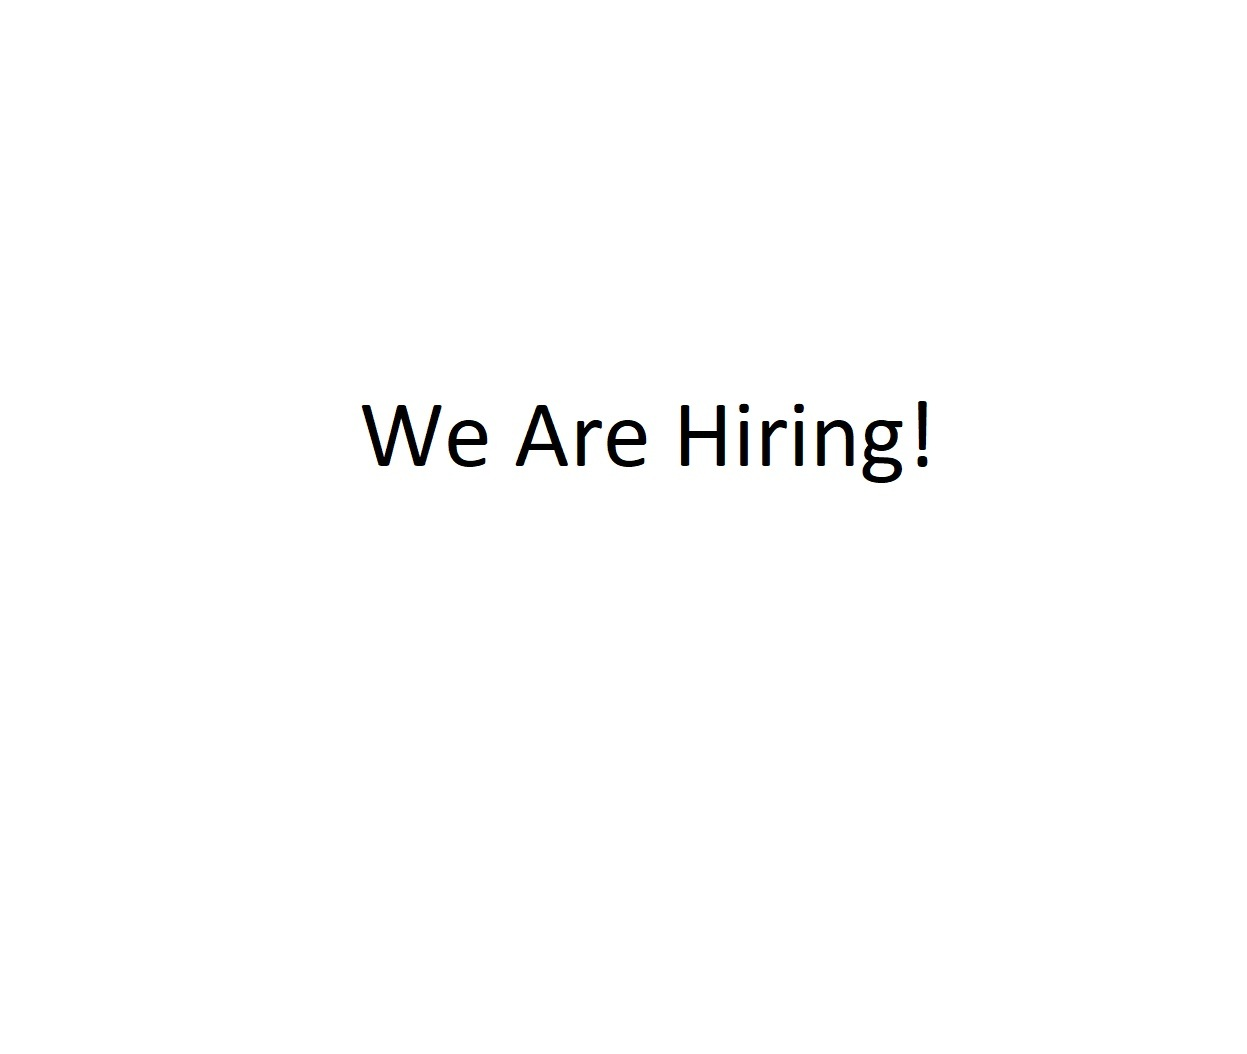 We have a various positions available at our clinic.  If you are a physiotherapist or massage therapist and interested in joining our team, please send your CV and a covering letter to: hamptonwickhealth@gmail.com